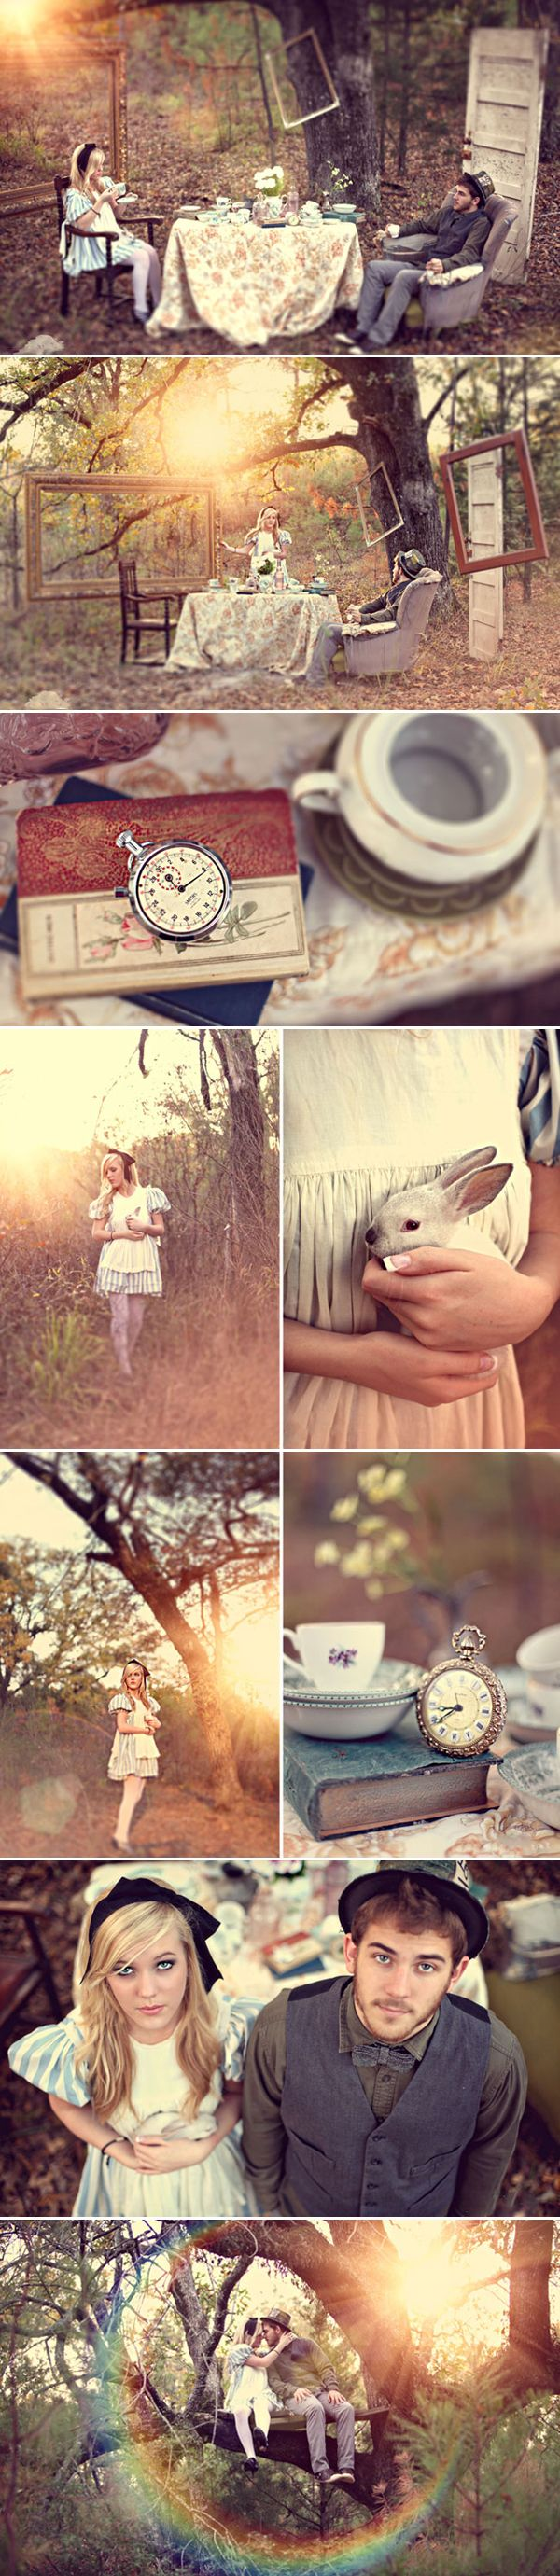 Fairytale Inspired Engagement Photos - Alice in Wonderland Engagement Session Apparel Inspiration Woods Love Couple Wedding  would love to shoot my next couple like this!   Irina Reichert Photography  http://irinareichertblog.com